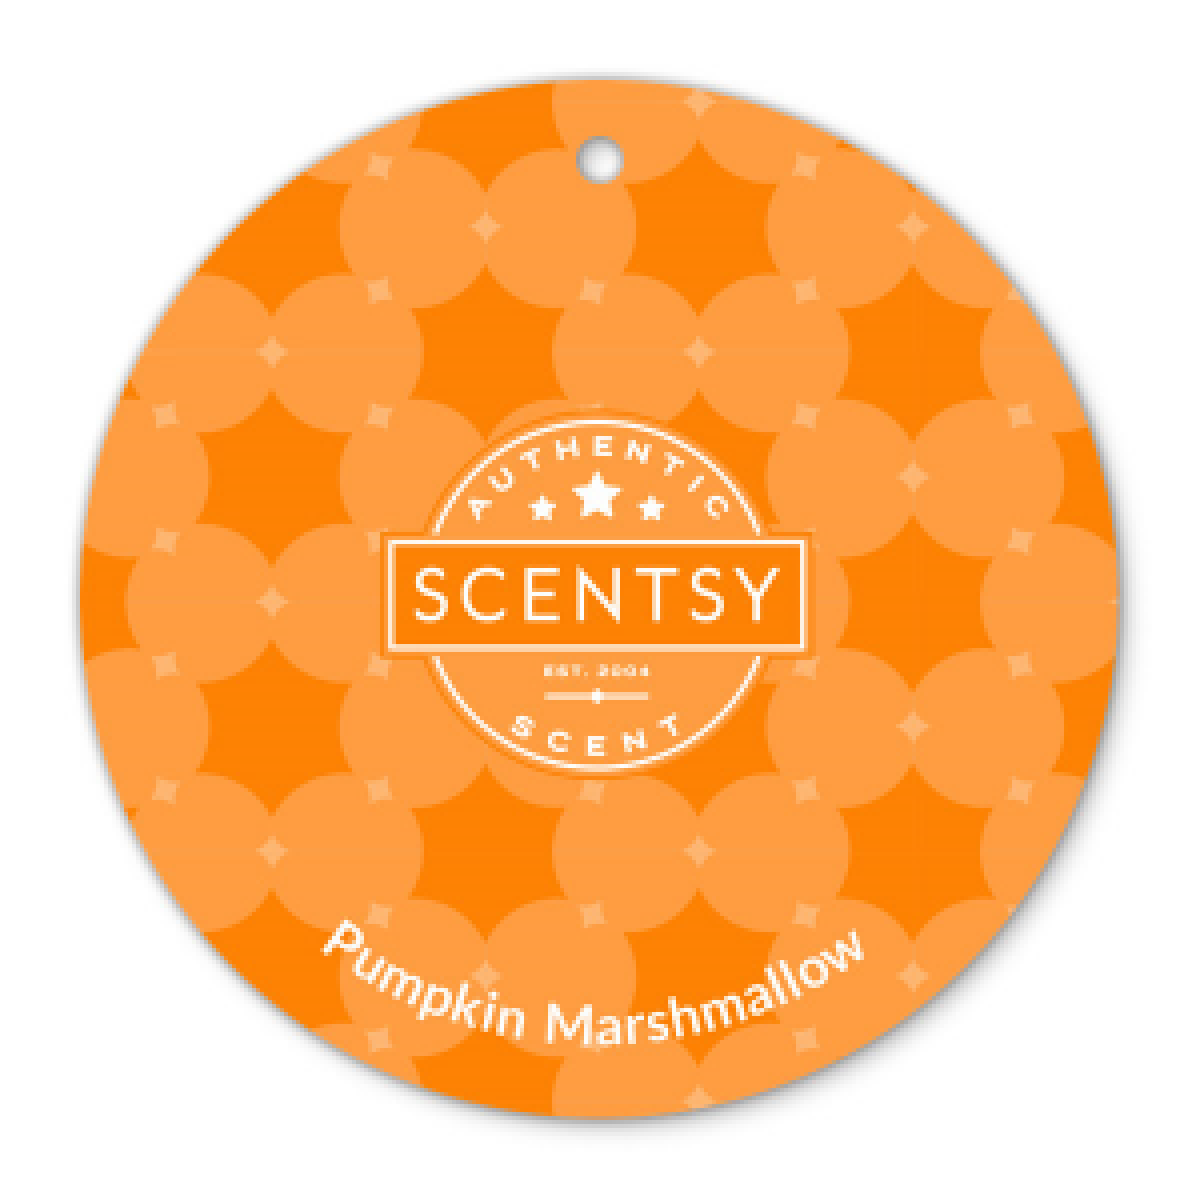 Pumpkin Marshmallow Scent Circle Scentsy Online Store New Authentic Fragrance Products